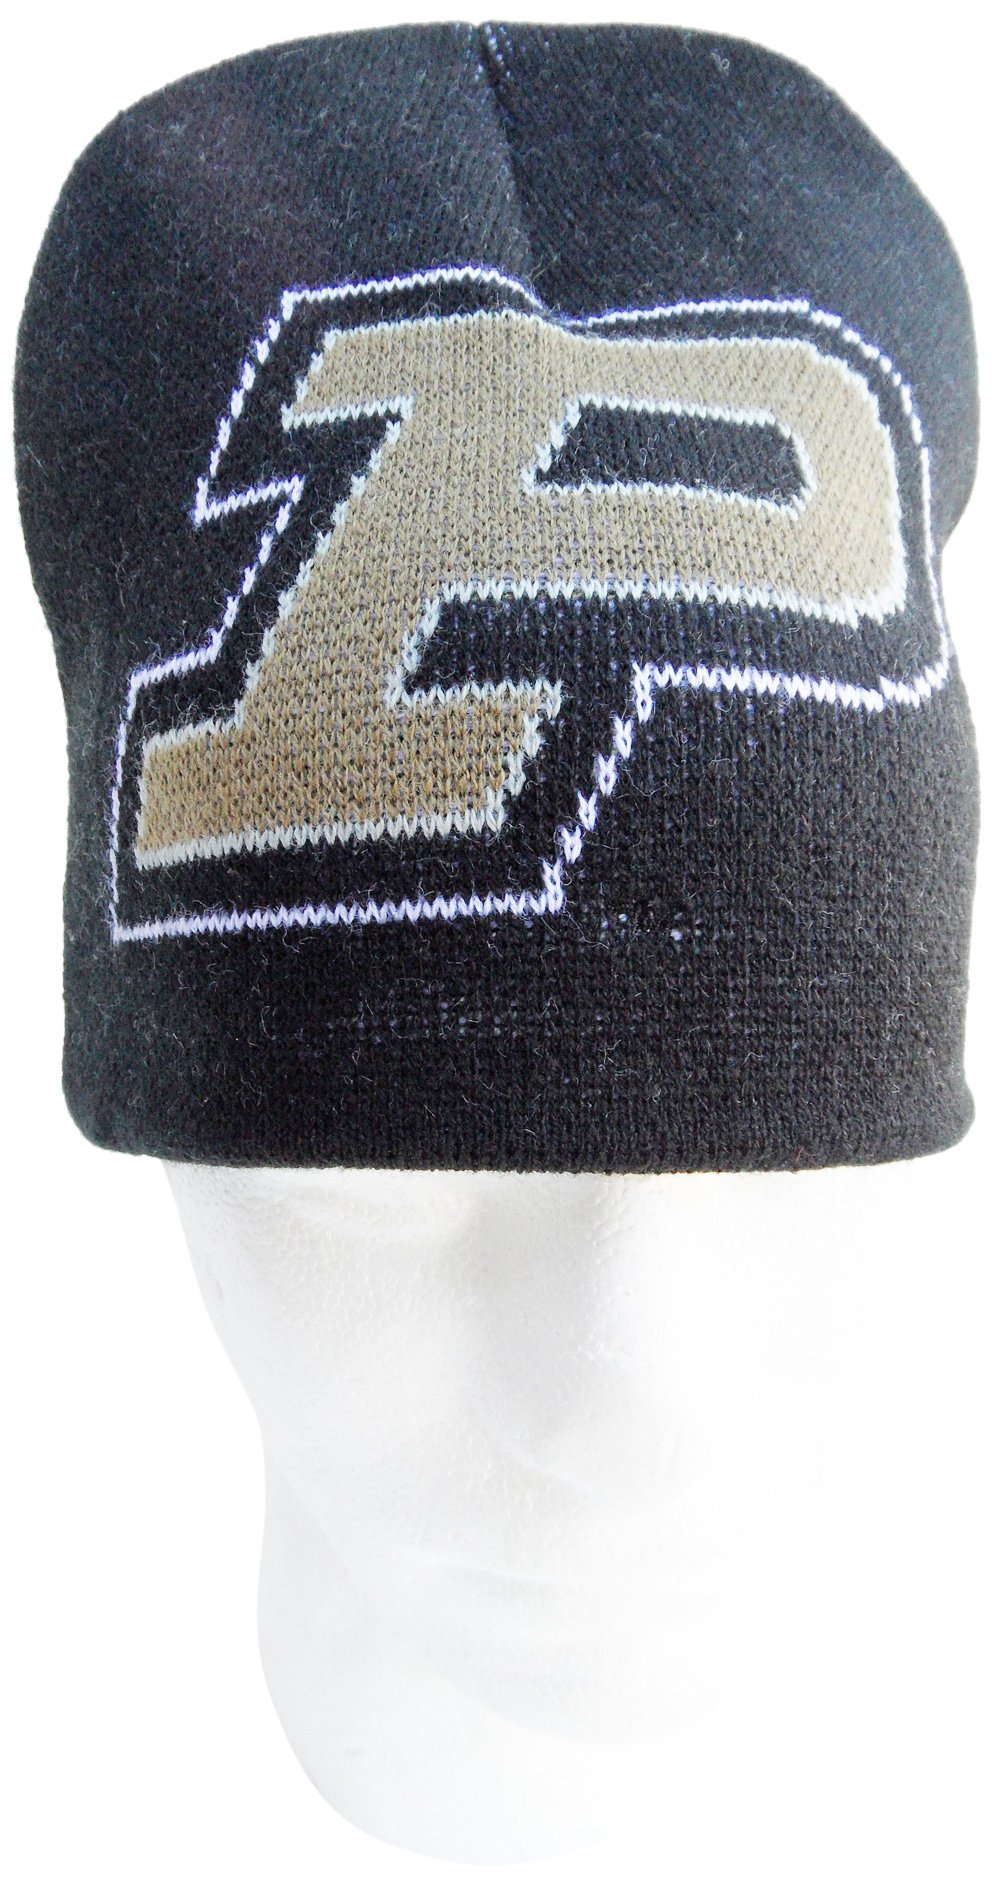 NCAA Purdue Boilermakers Jacquard Knit Hat, One Size, Brown